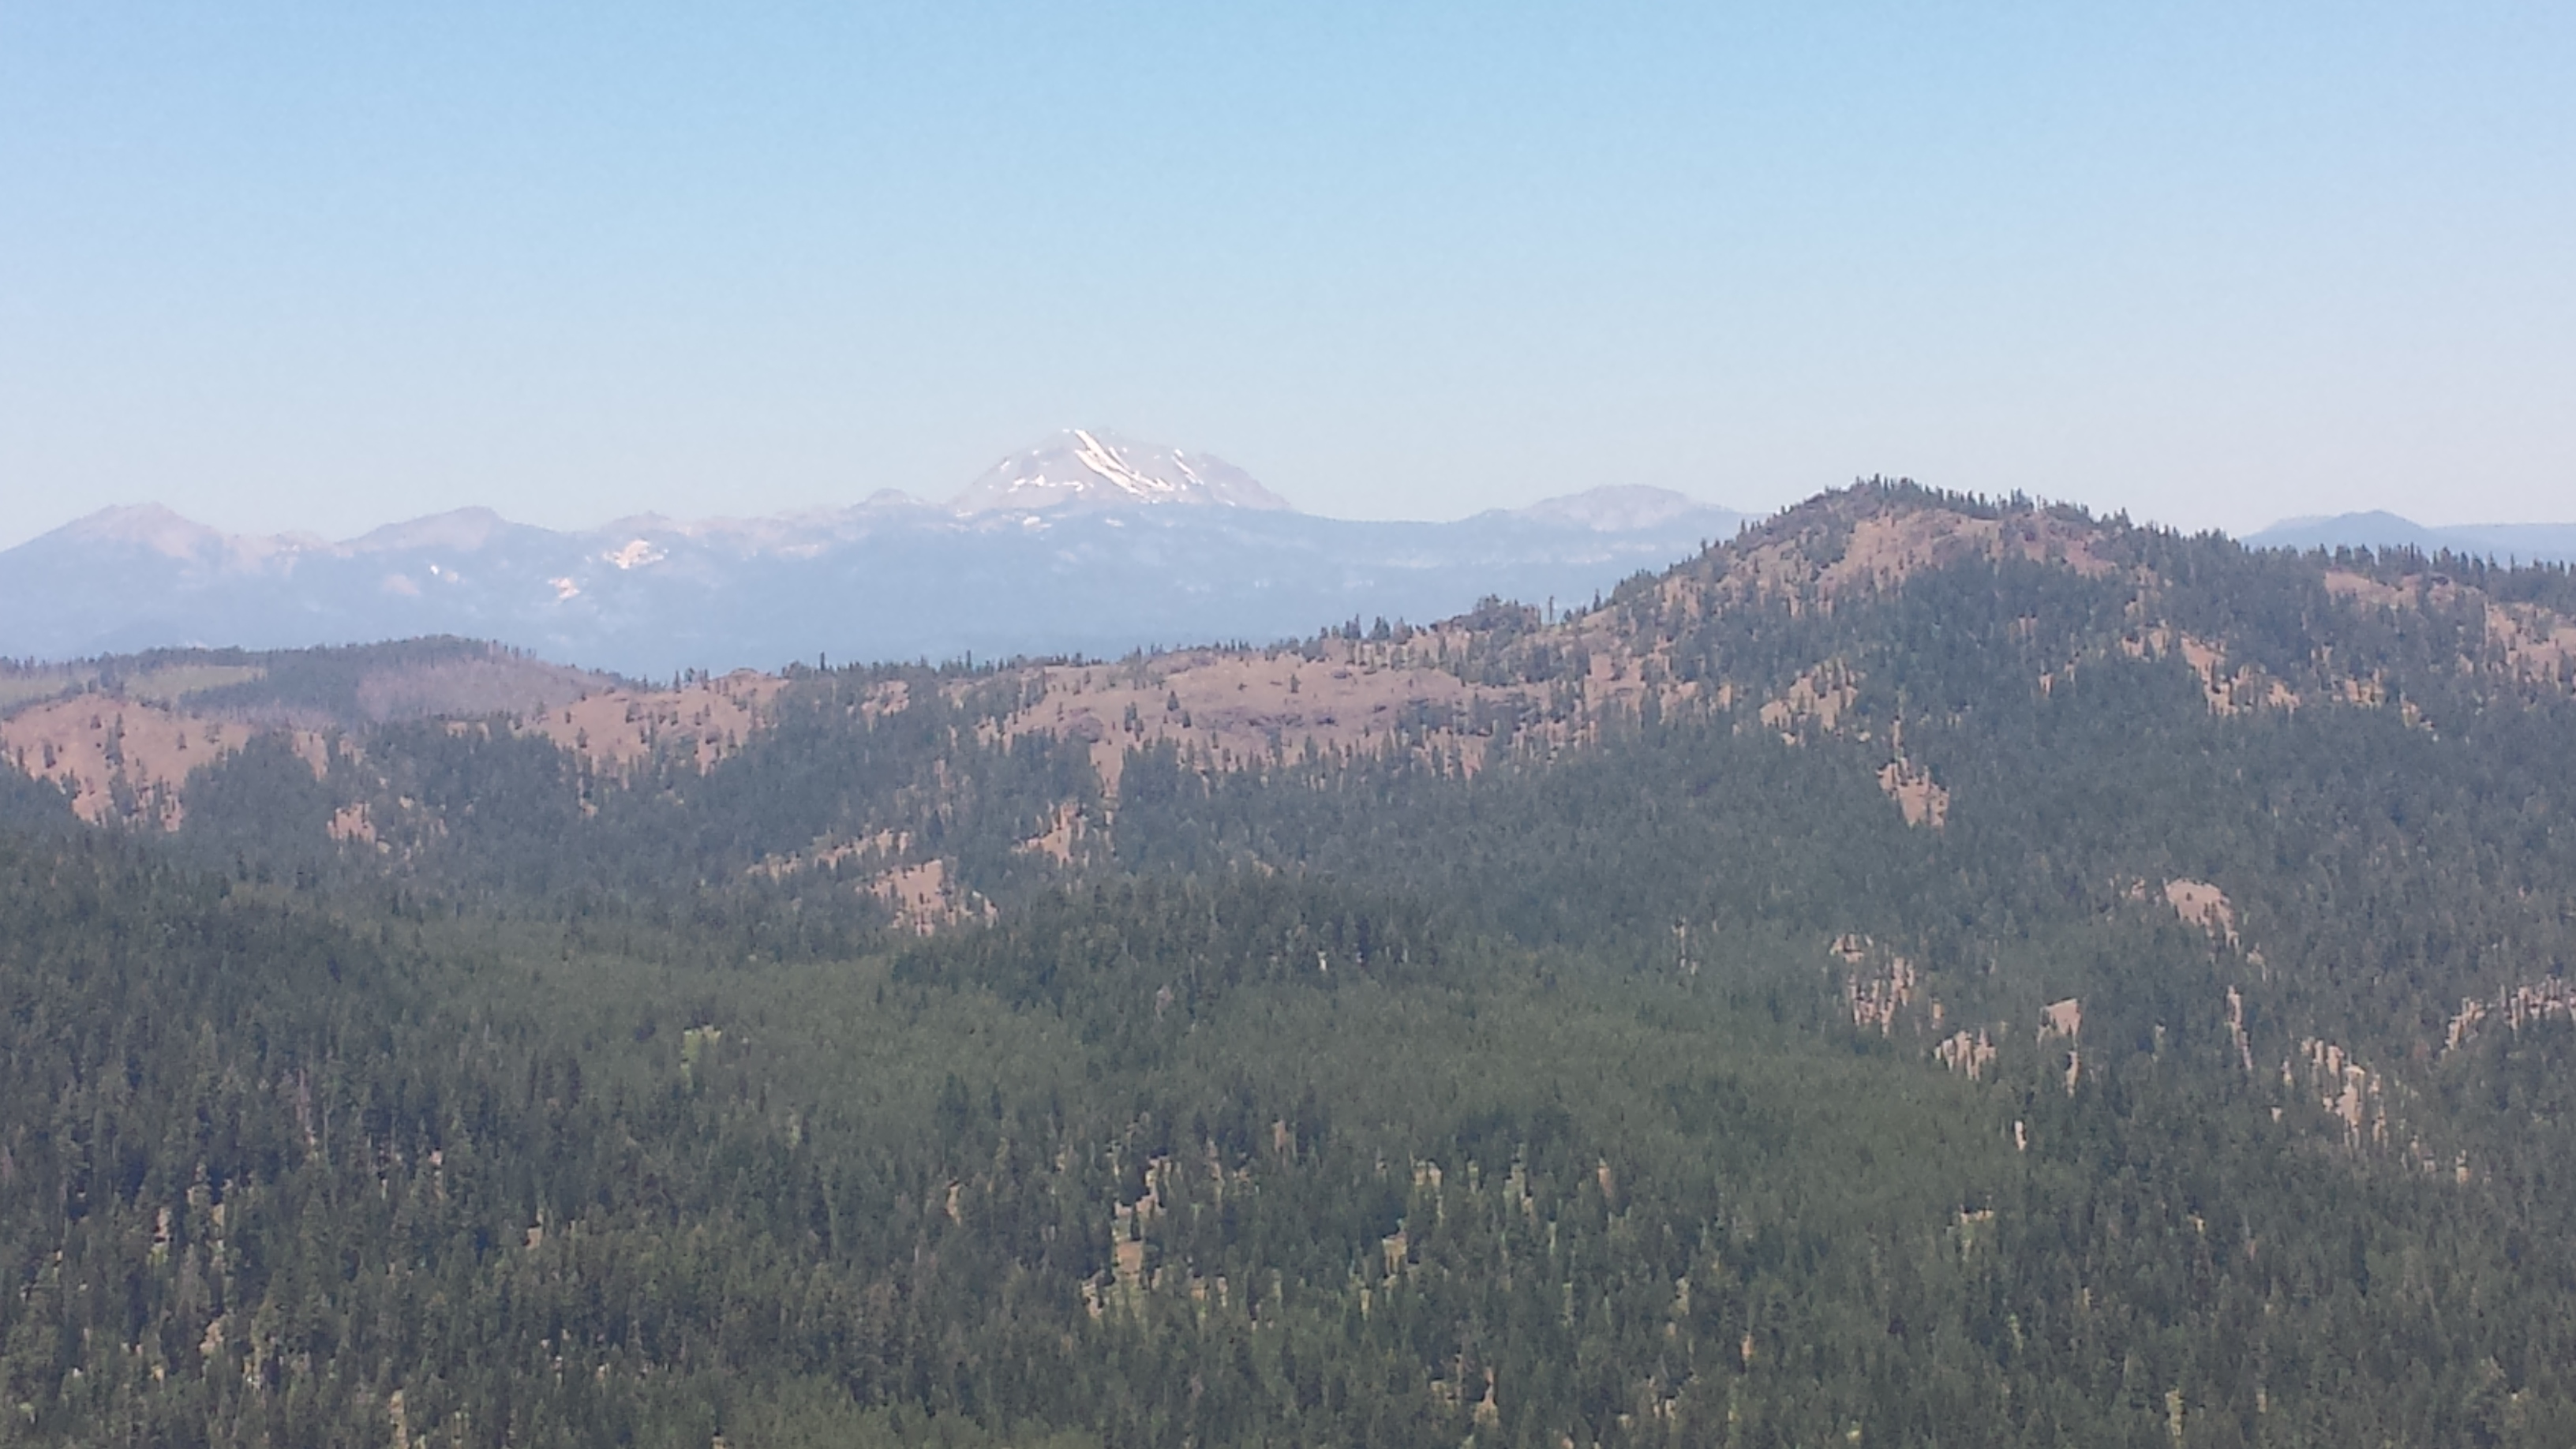 Mount Lassen in the distance